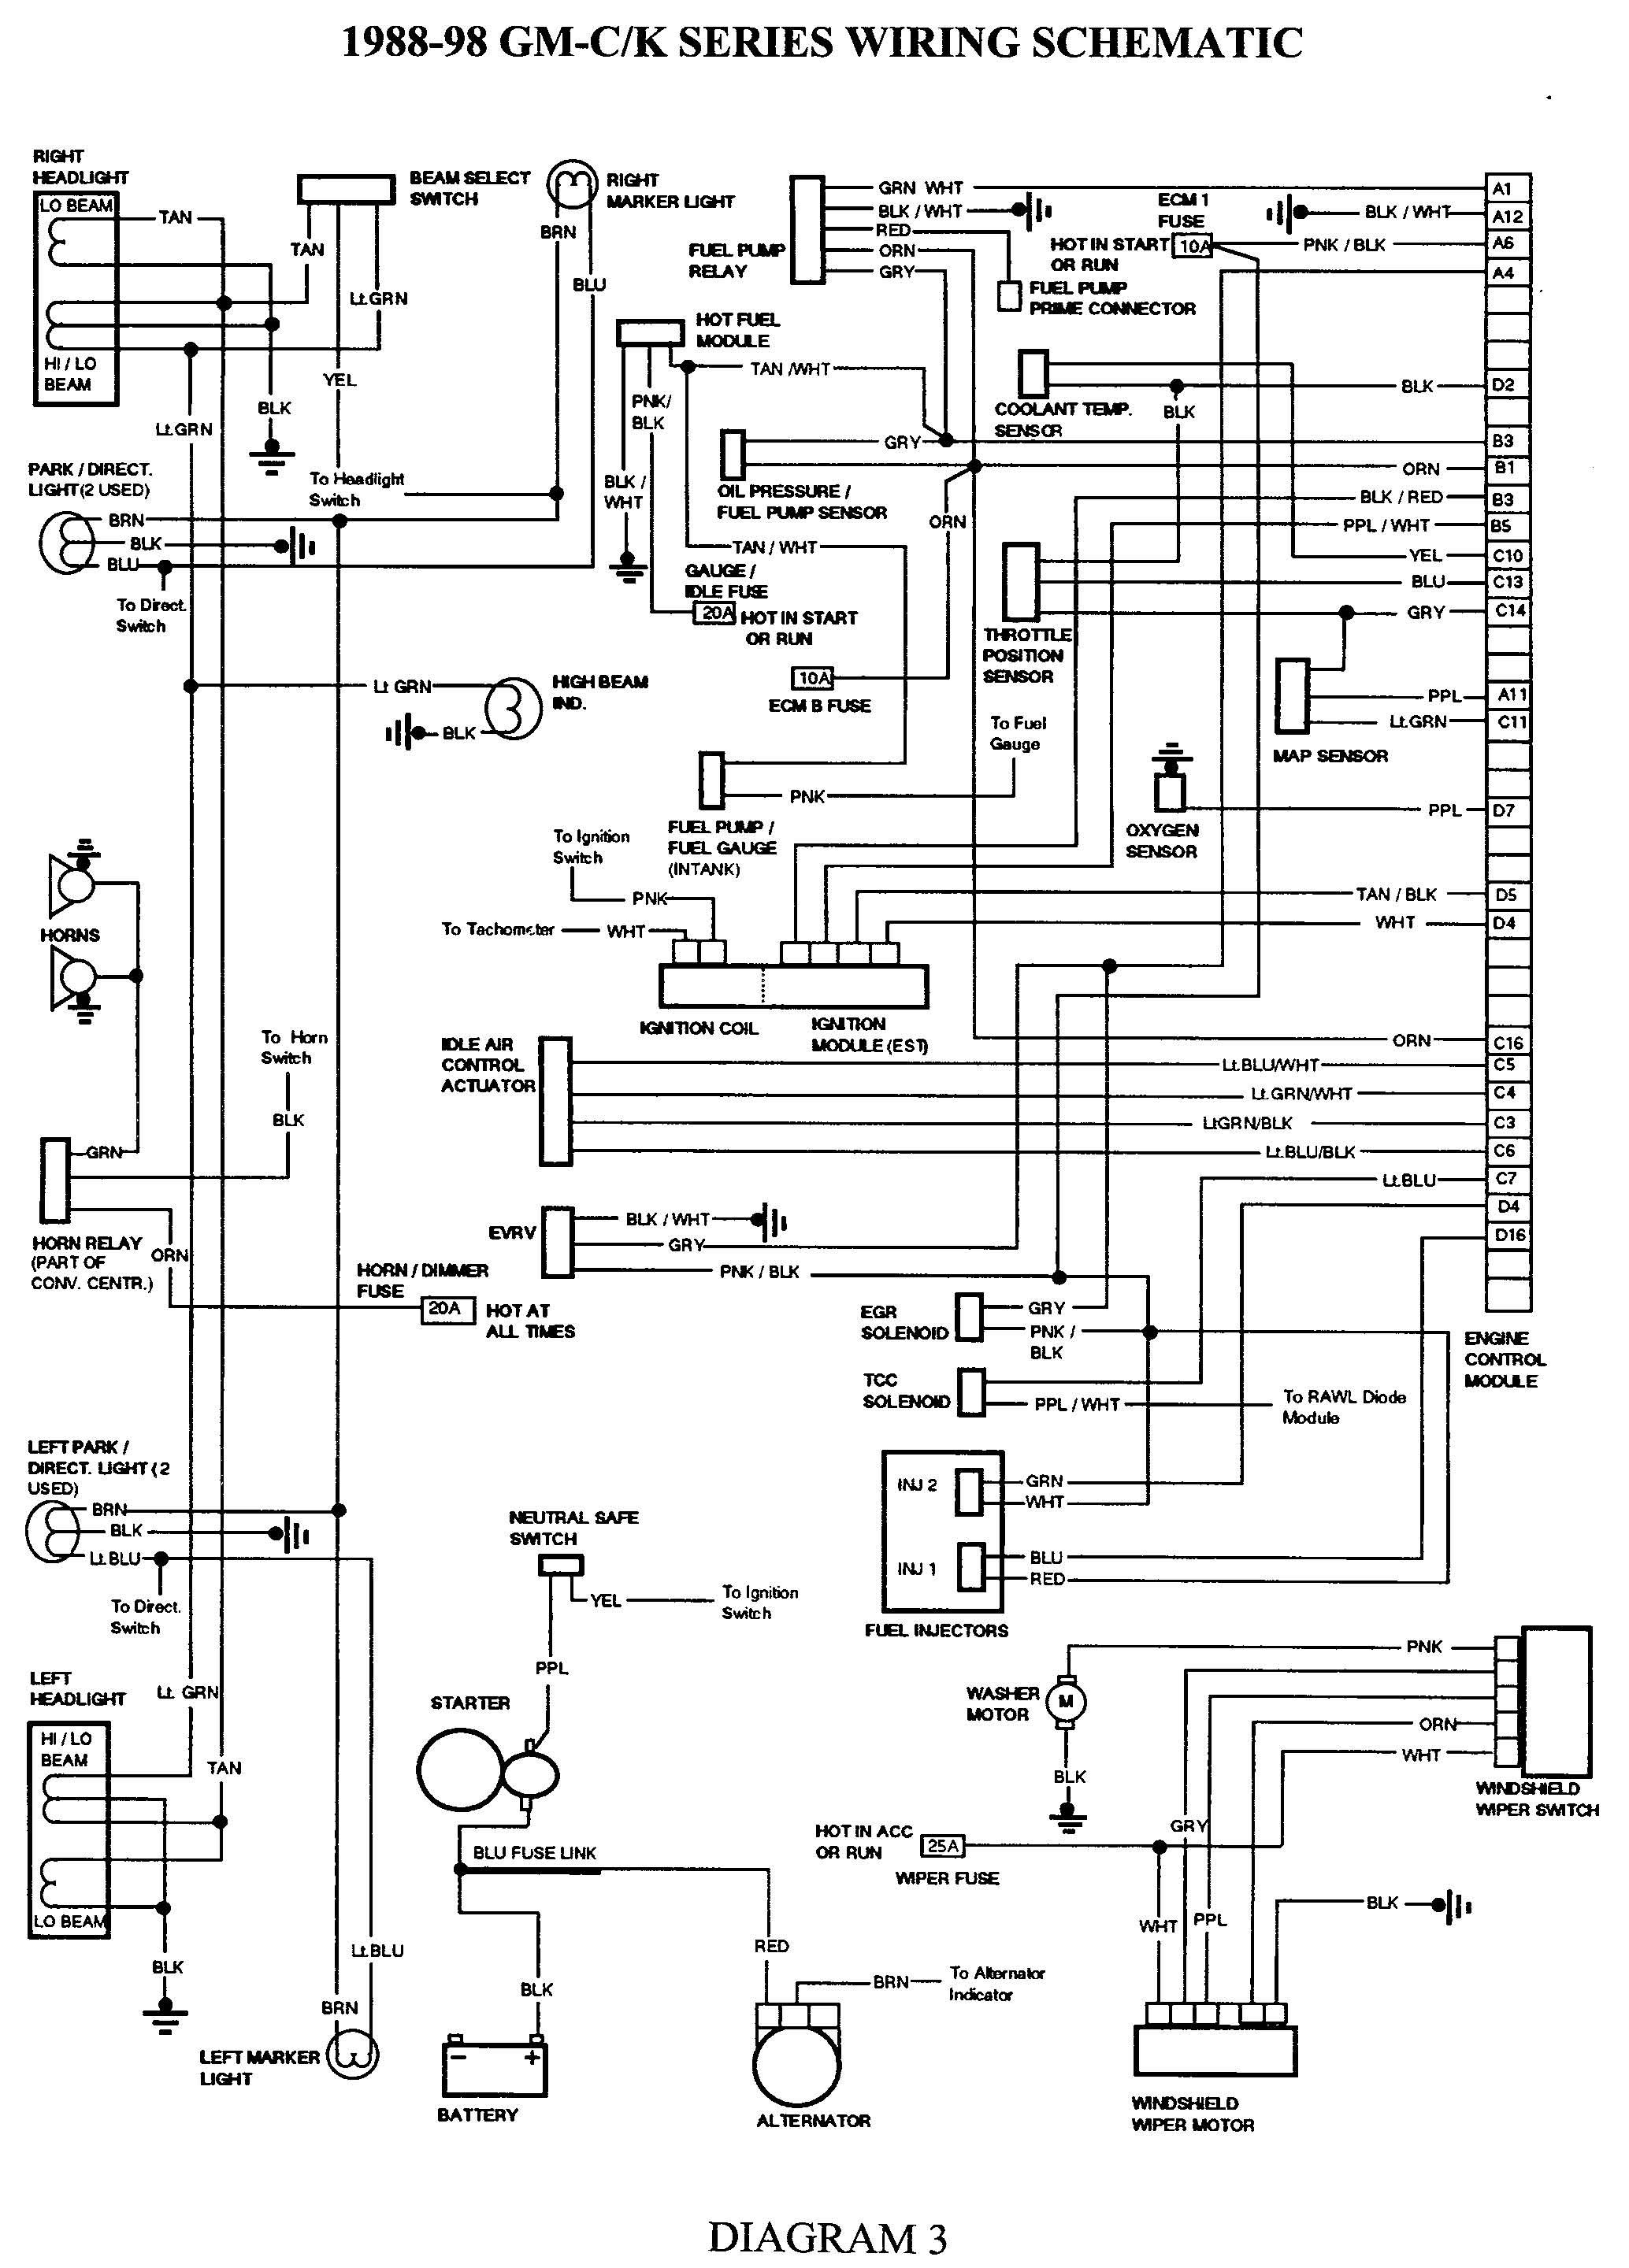 diagrams on gm wiring harness diagram 88 98 kc rh pinterest com 2000 chevy silverado front end diagram 2000 chevy silverado front suspension diagram [ 2068 x 2880 Pixel ]